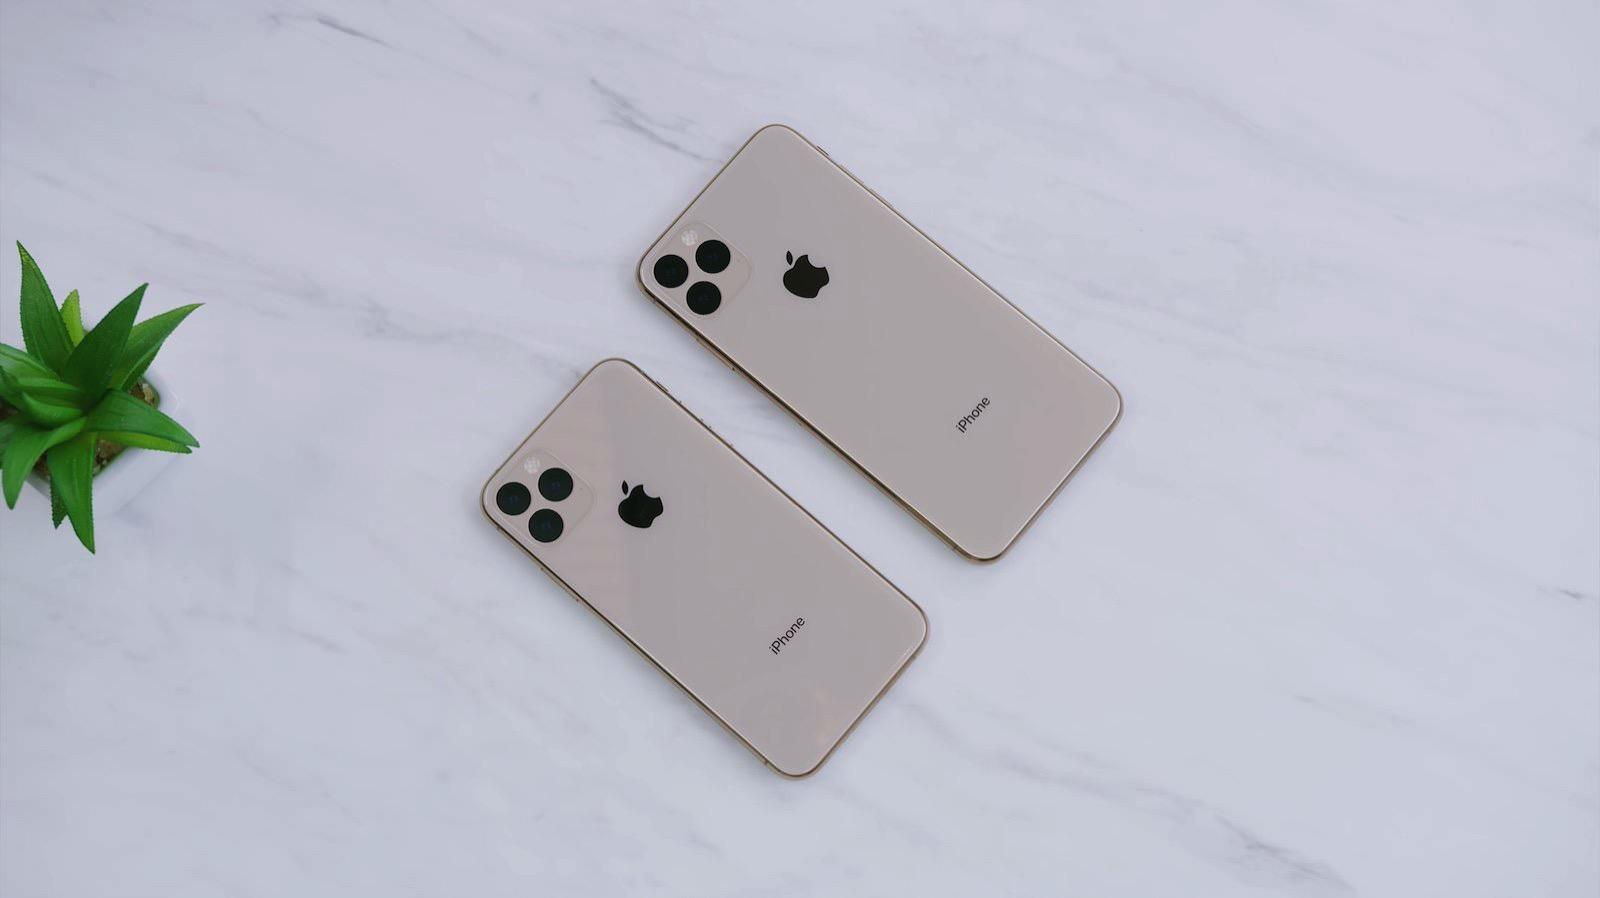 Iphone 11 pro series concept images